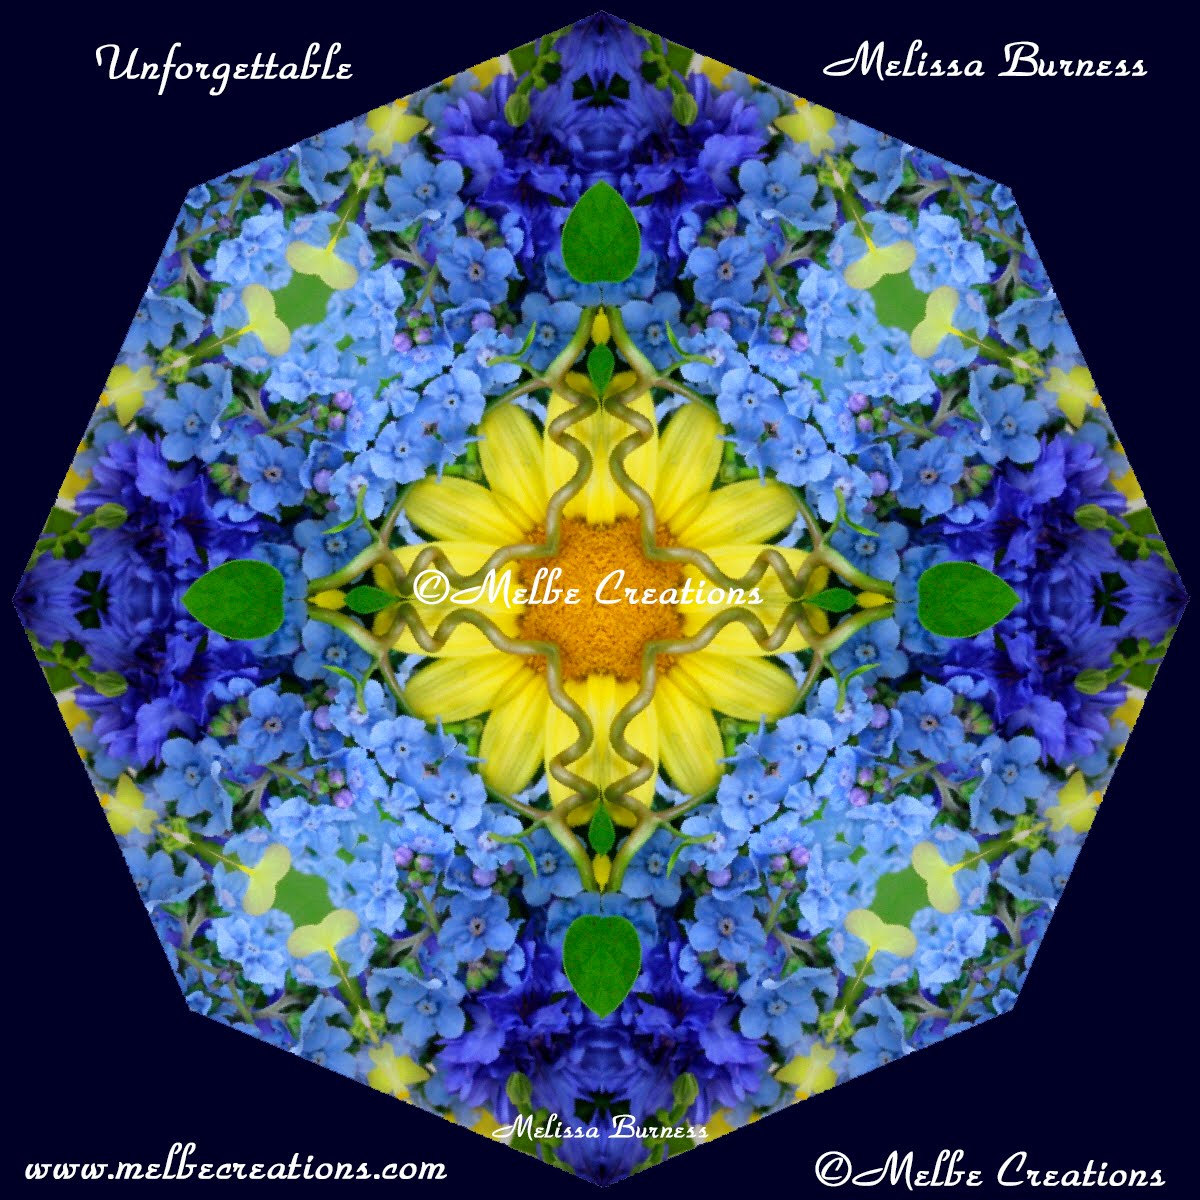 Melbe Creations Website Store